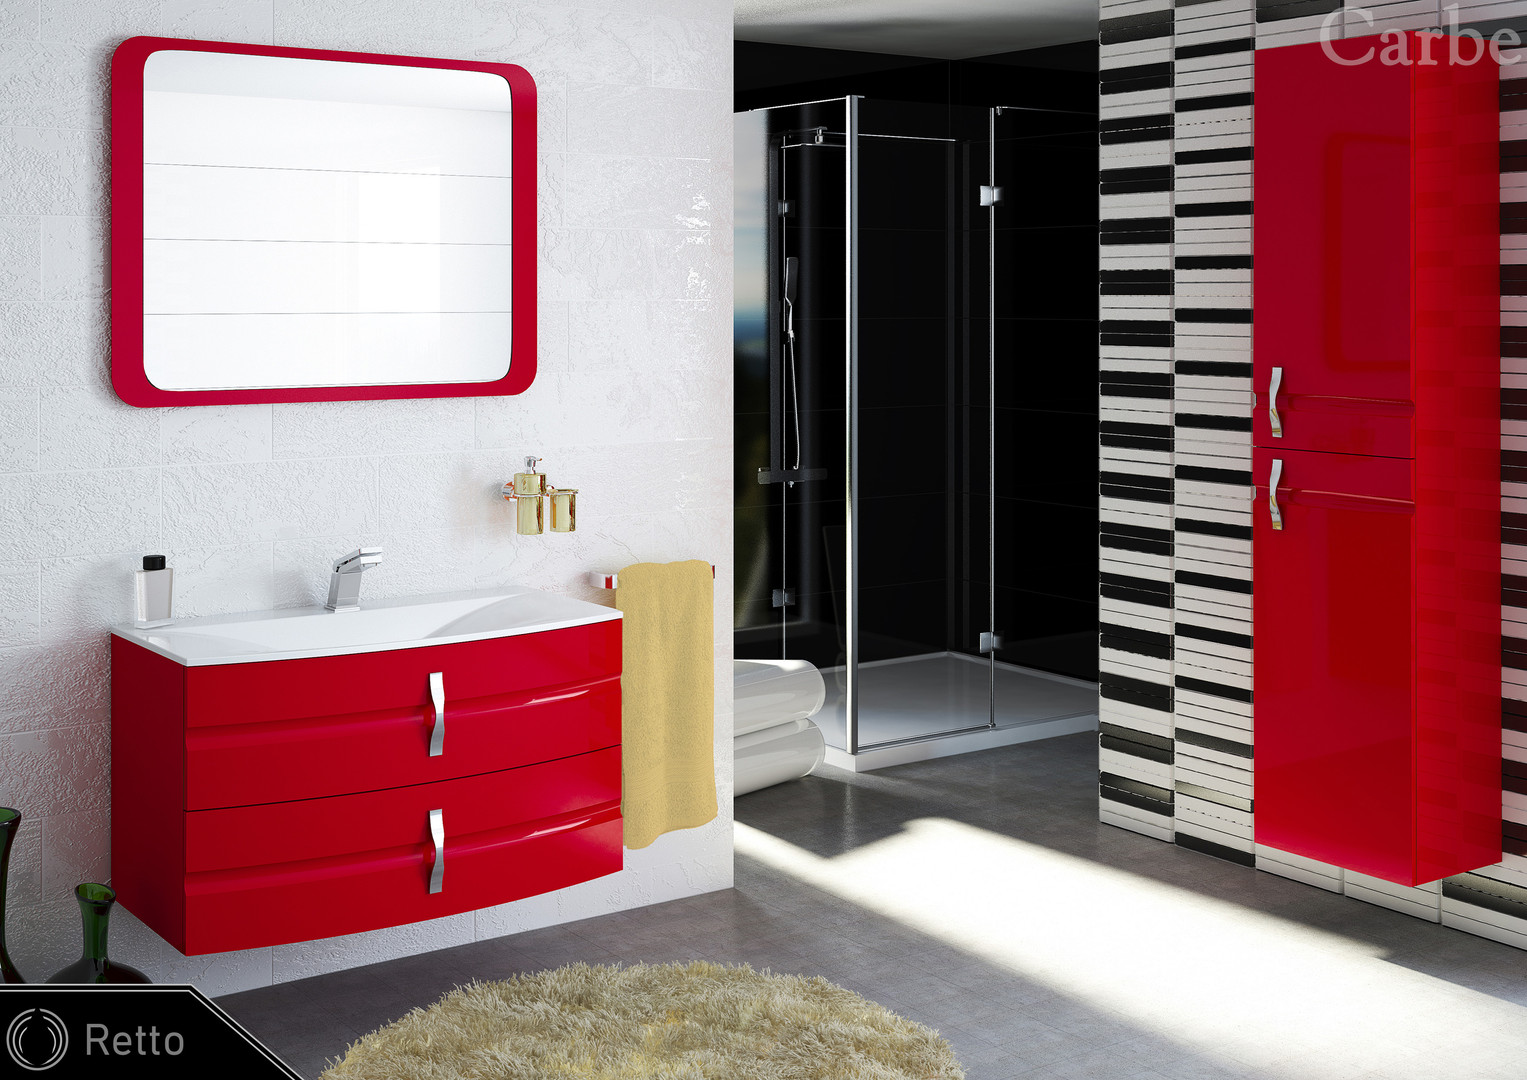 Retto - Rosso High Gloss, Dolmite Washbasin, Soft Closing